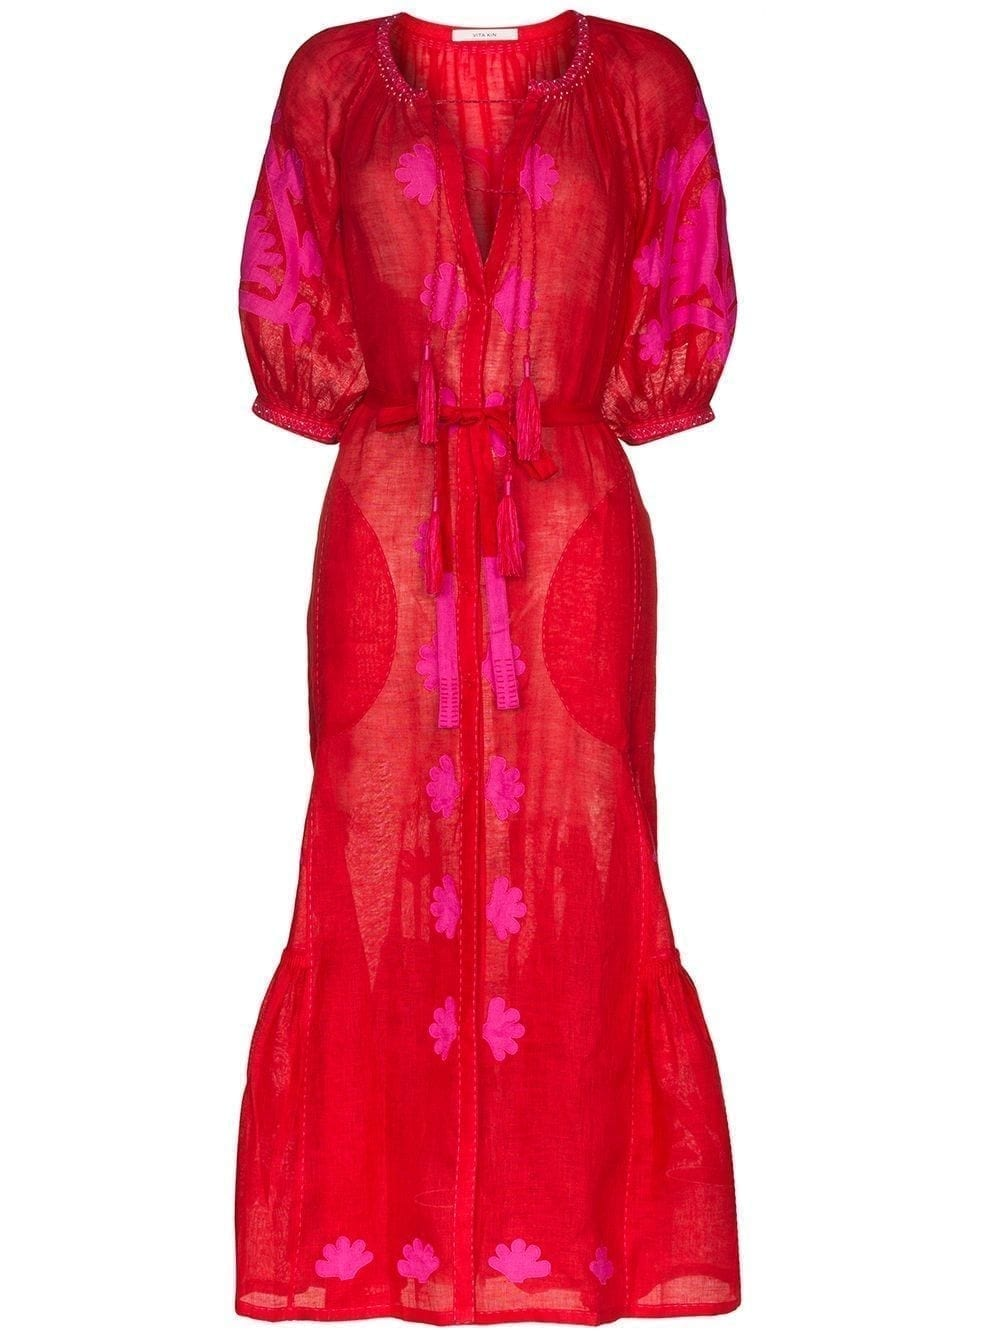 VITA KIN Red And Fuchsia Shalimar Belted Dress